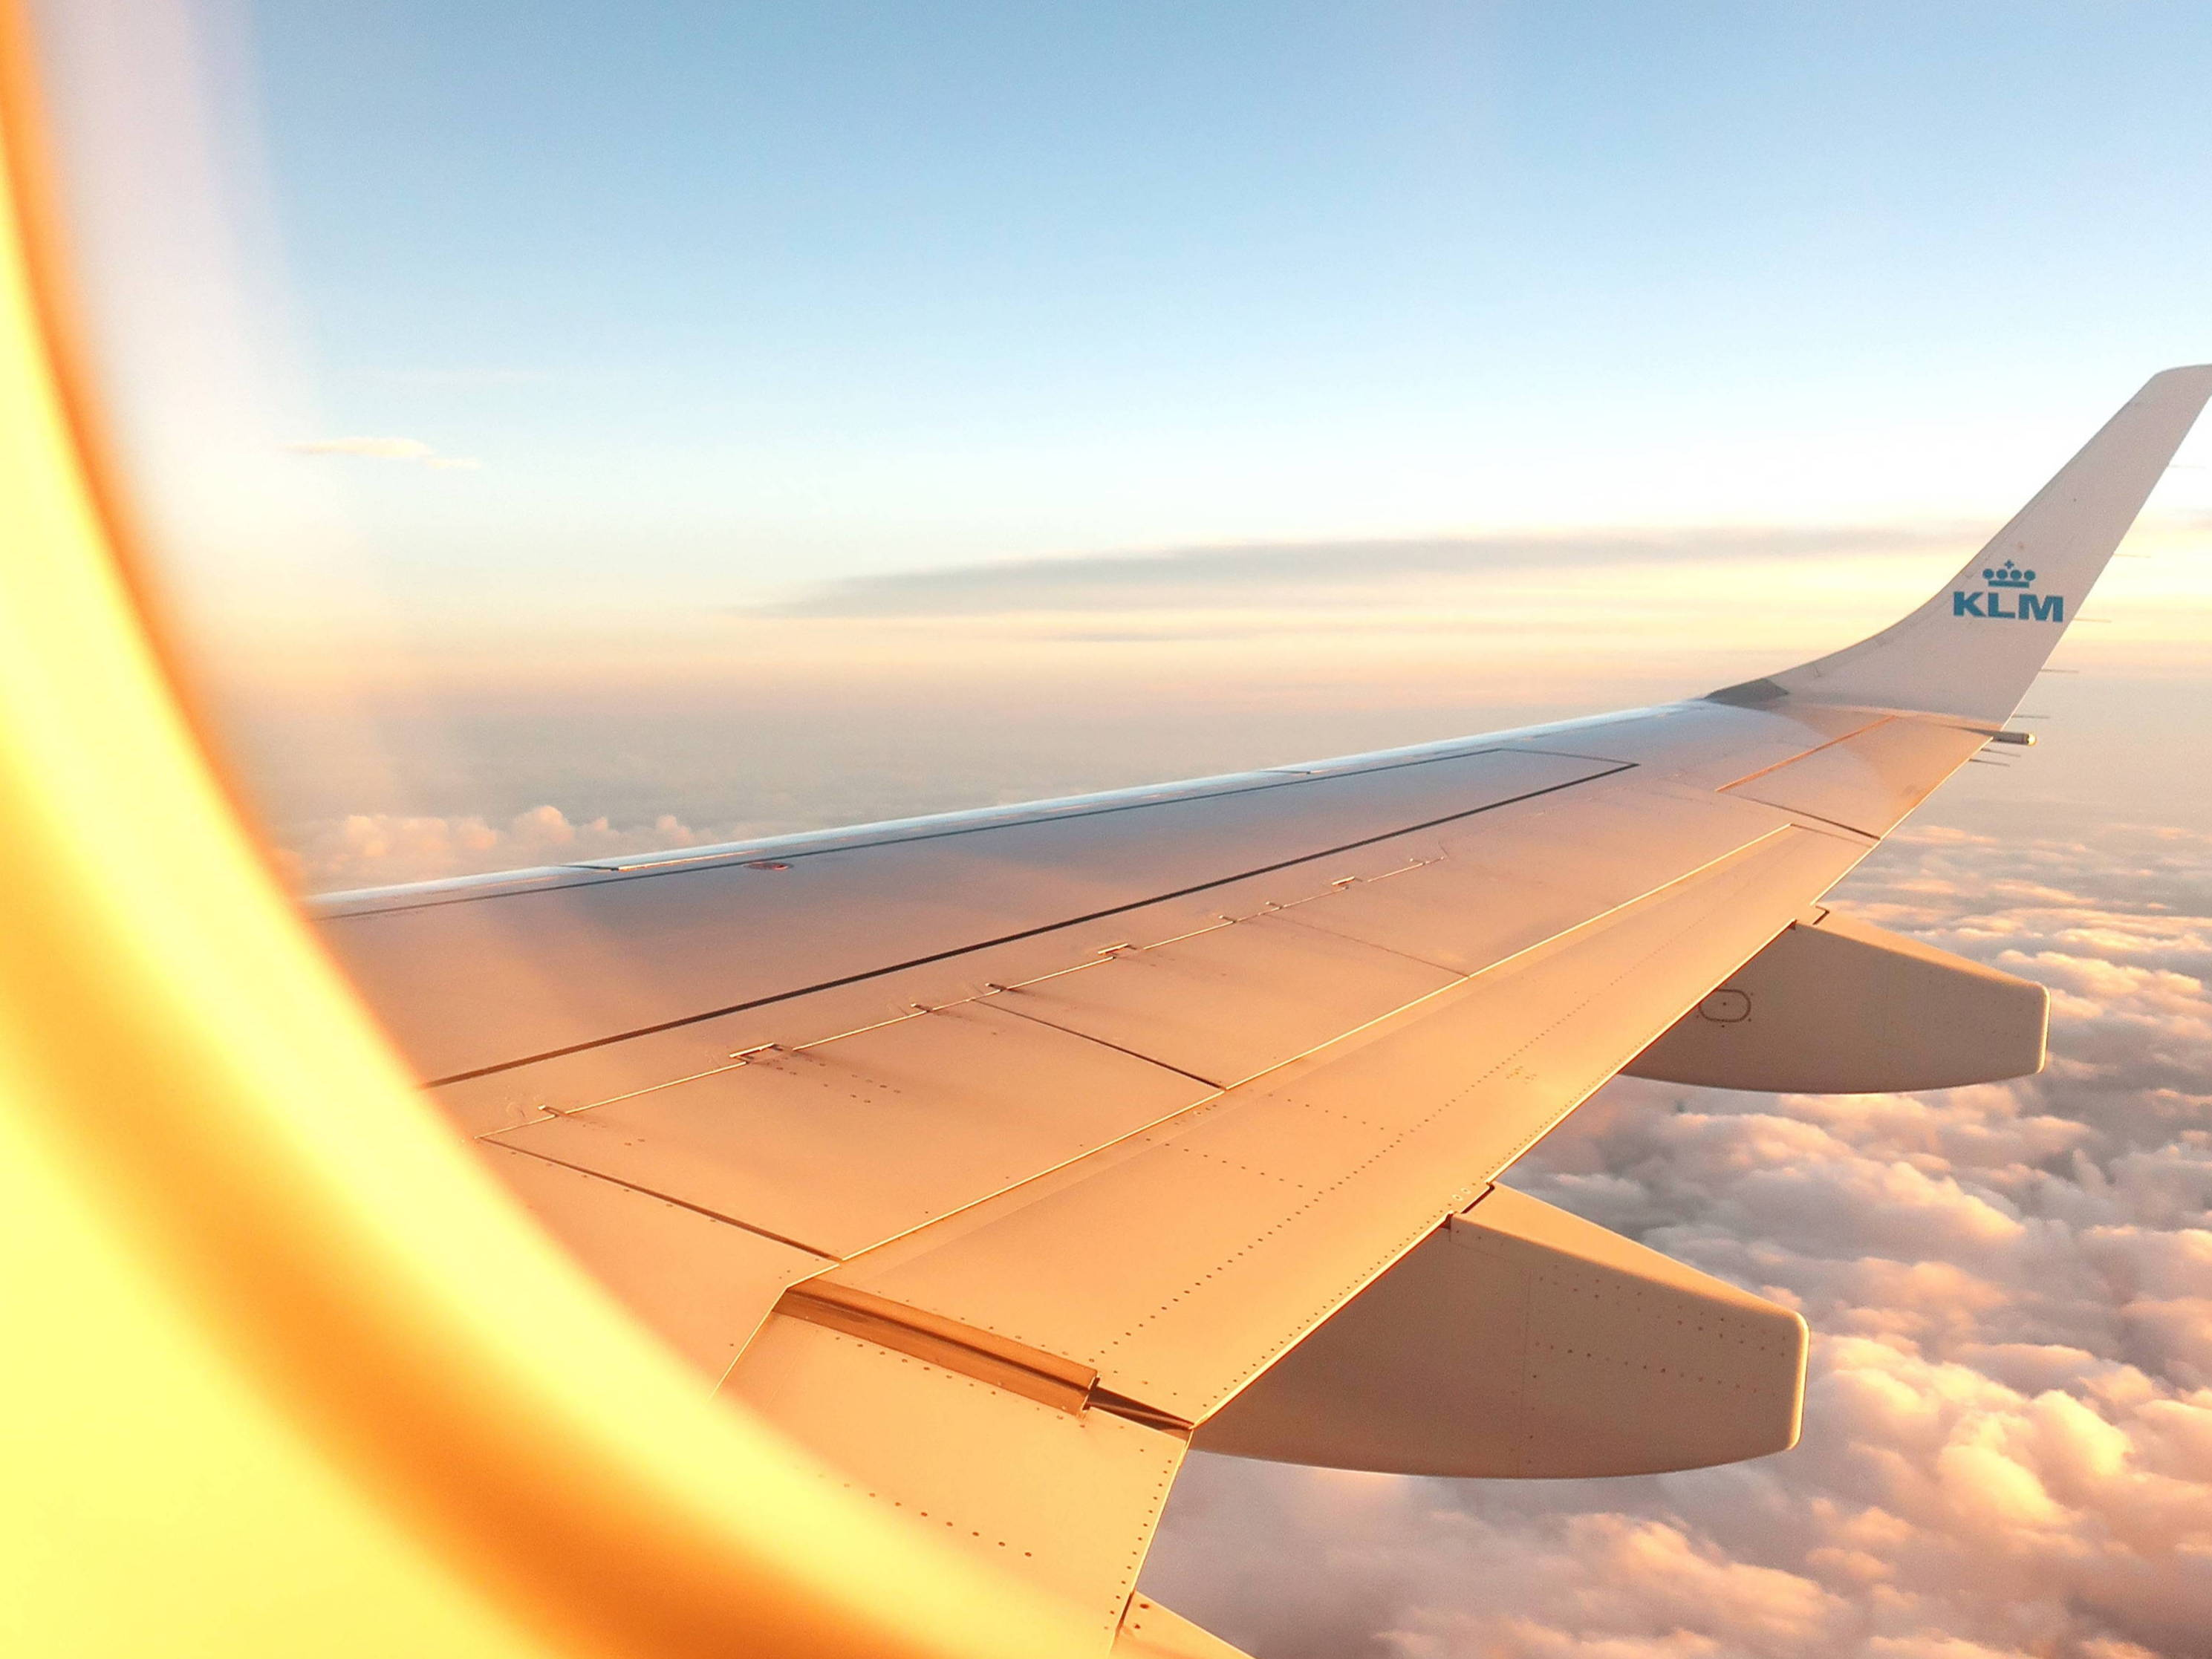 A view of the wing of an airplane through the window as it glides over white clouds